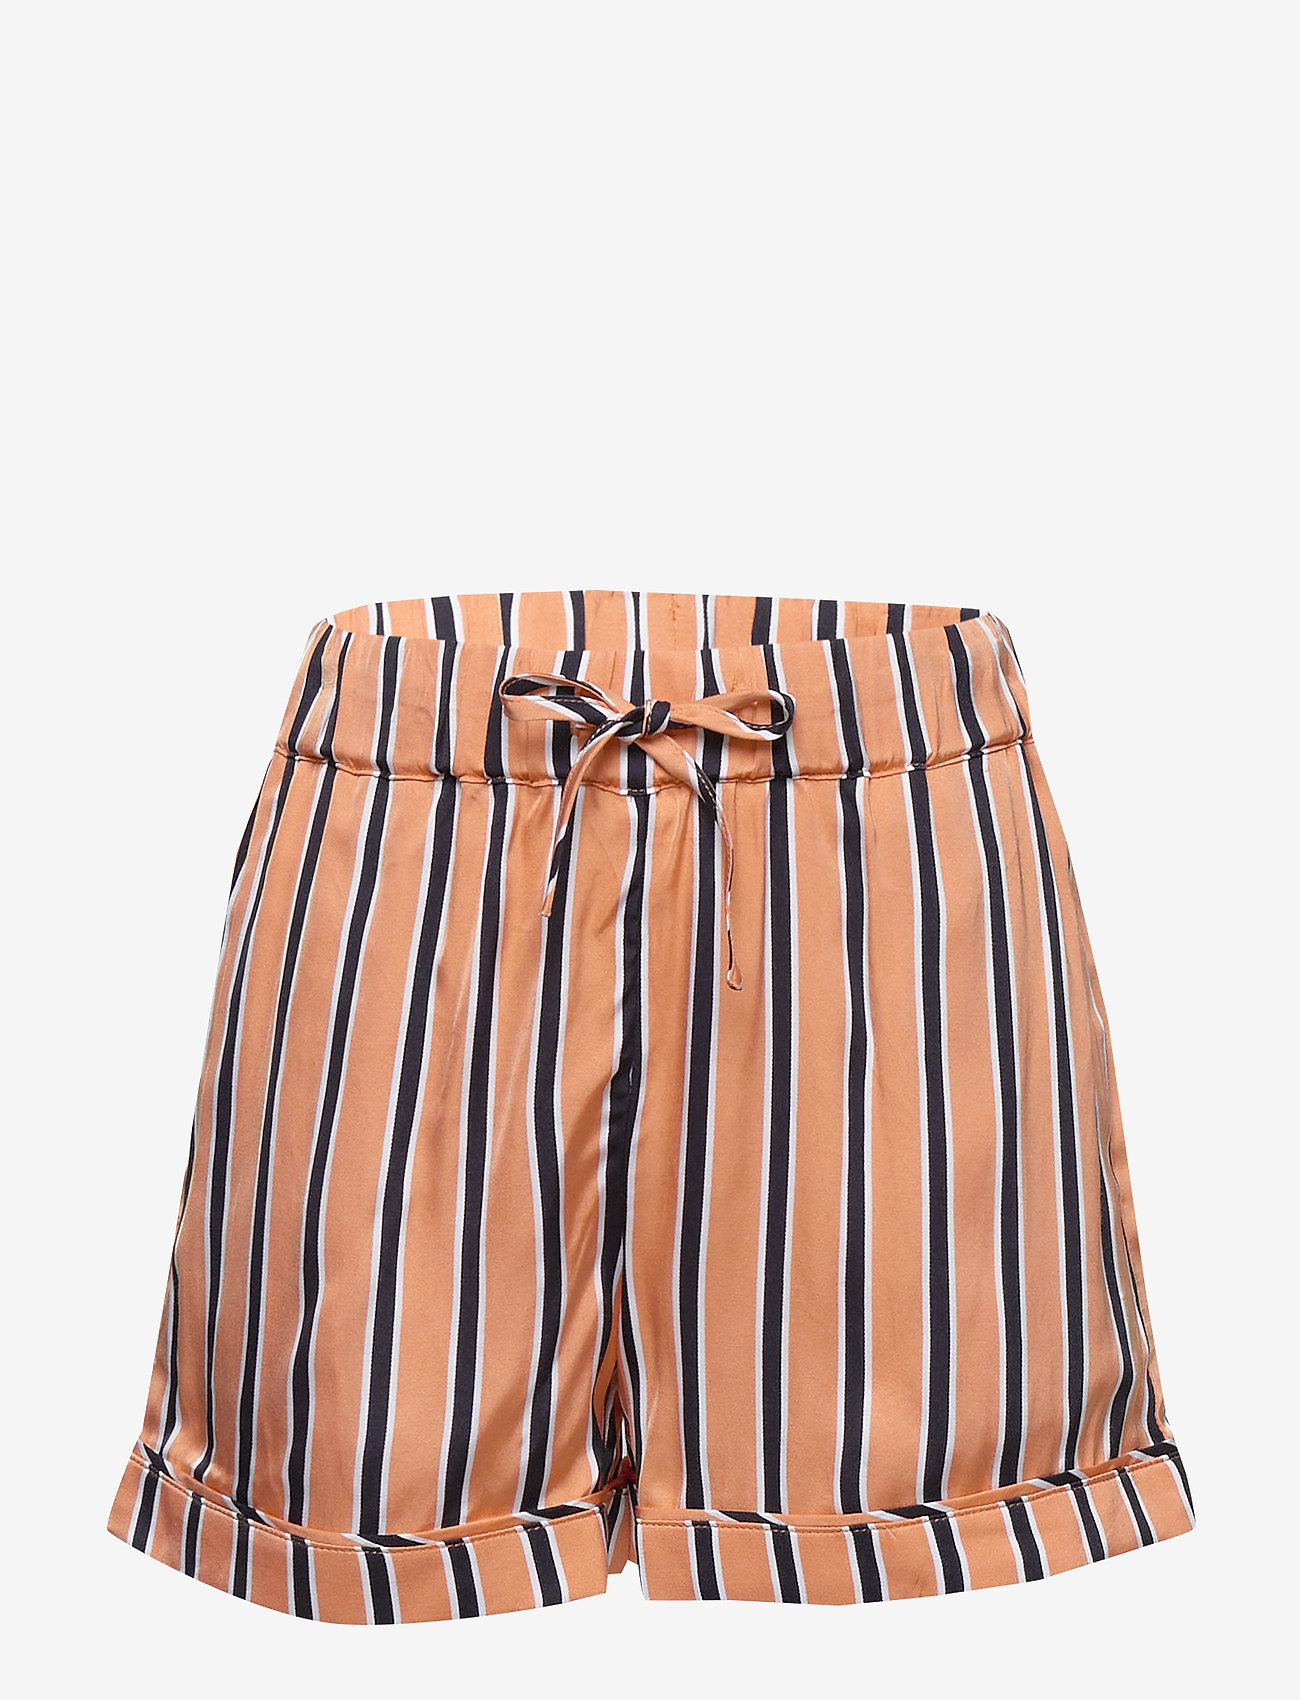 Tommy Hilfiger - RESORT STRIPE SHORTS - shorts - melon orange/ twilight navy - 0